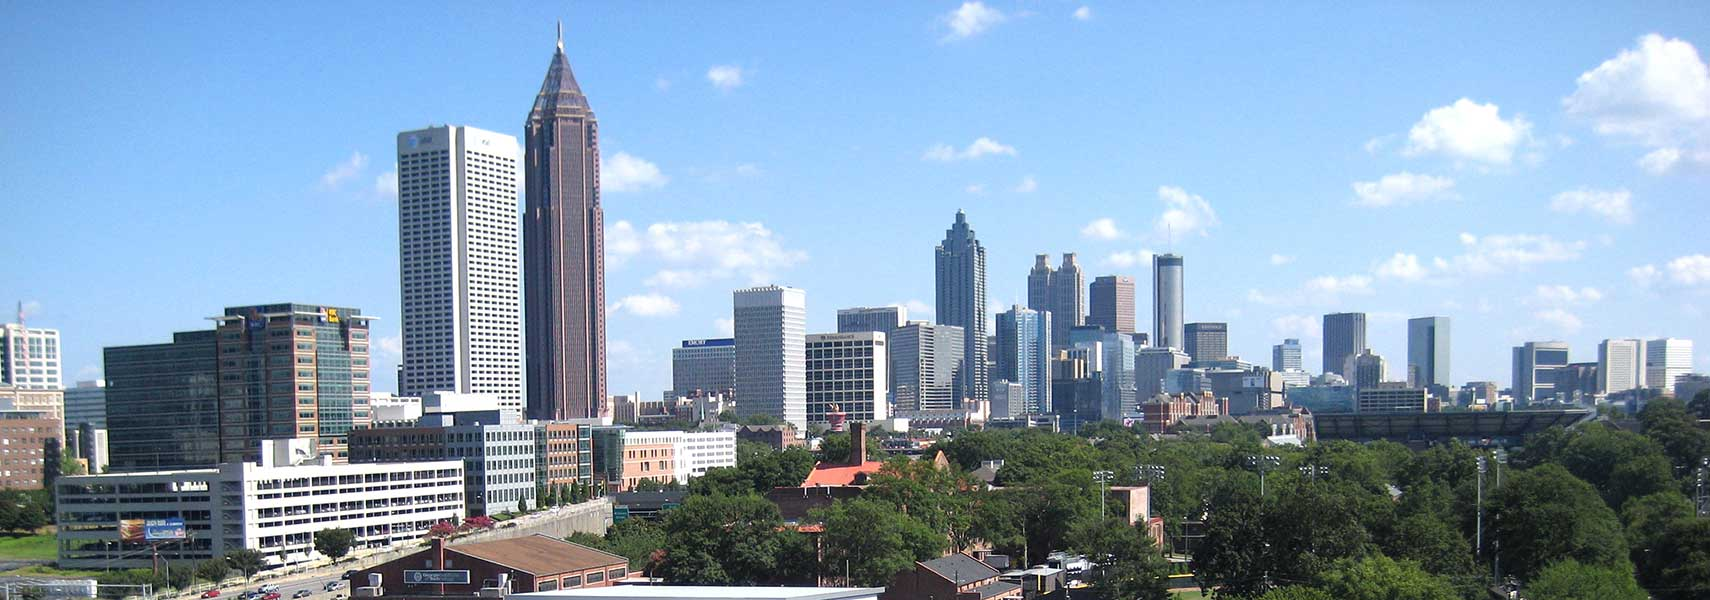 Skyline of Atlanta, Georgia, USA